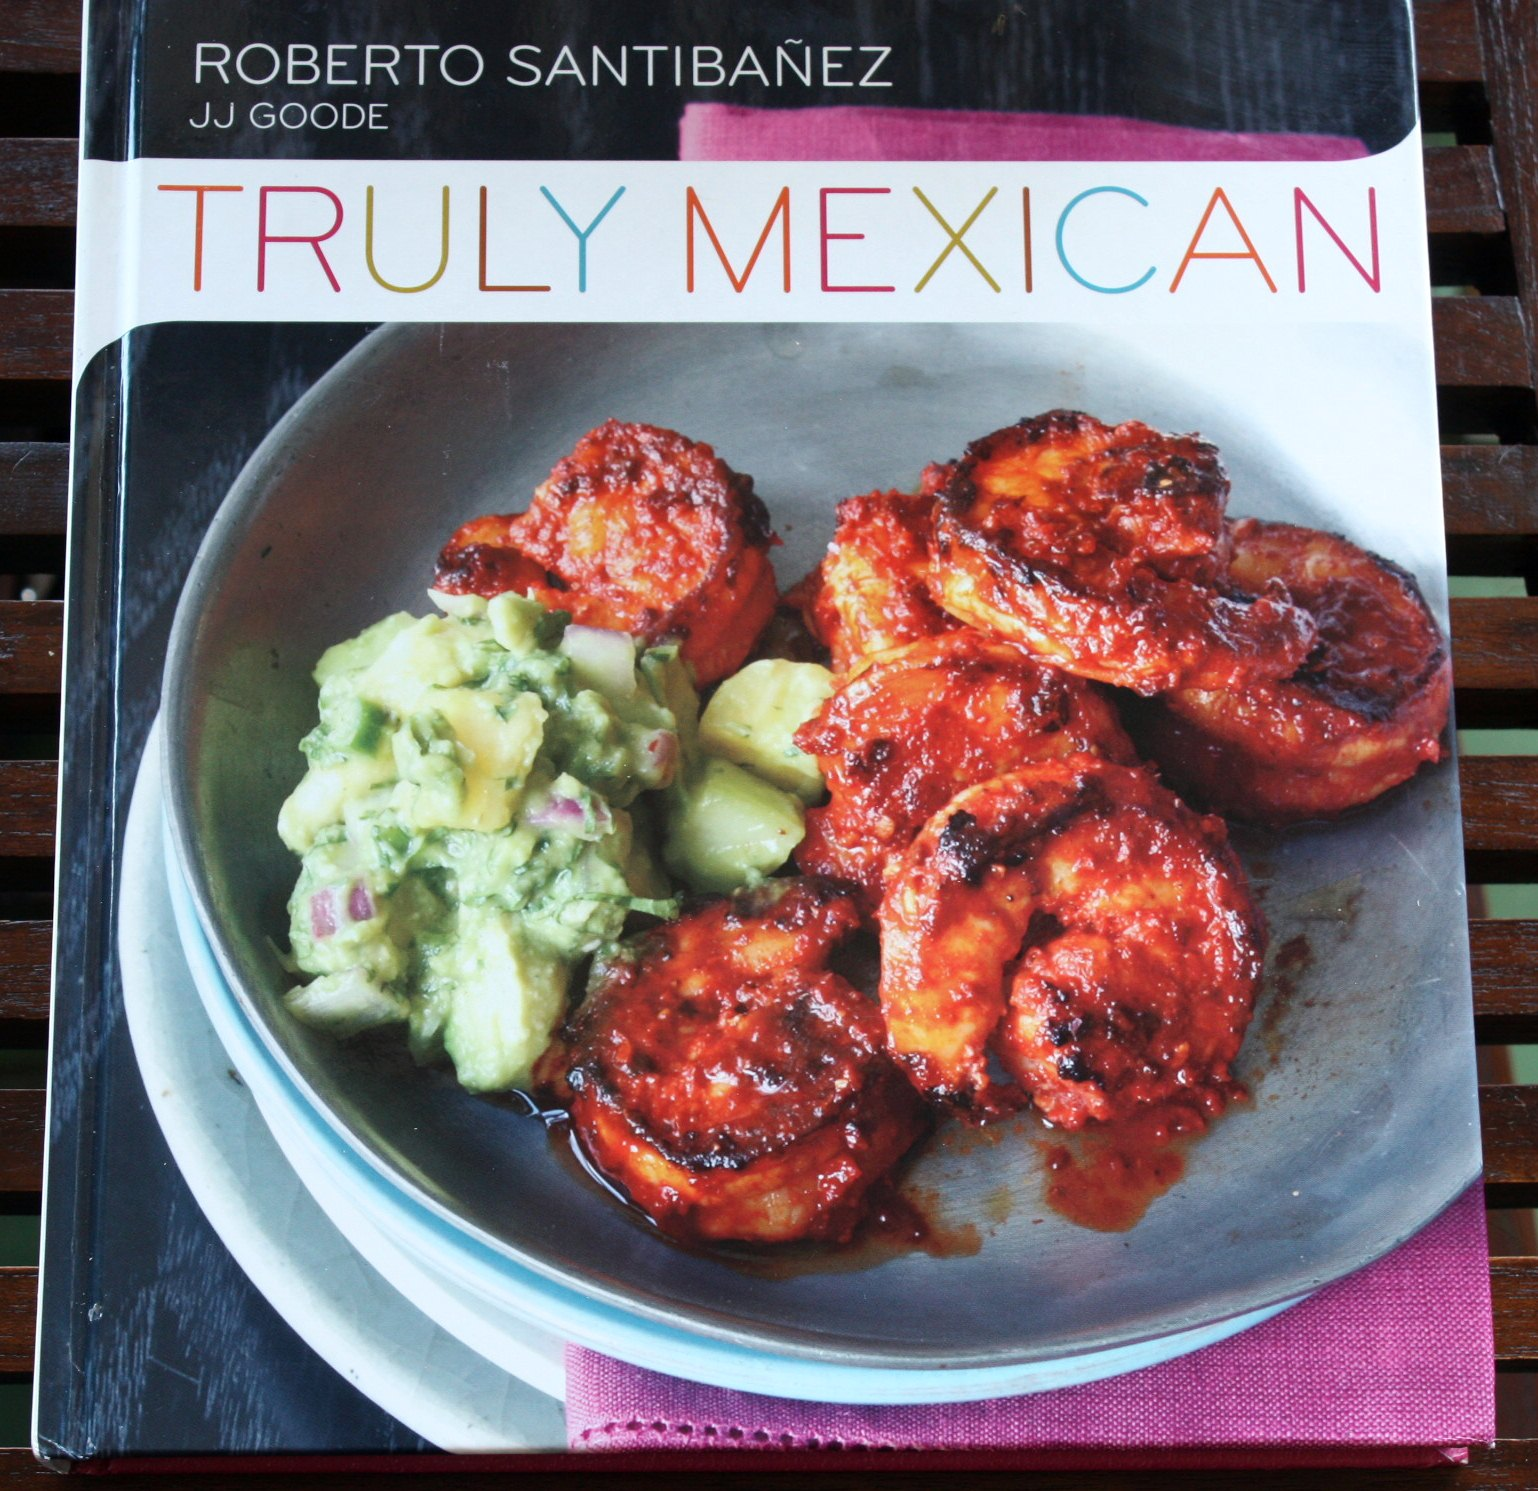 Seattle tall poppy the food i crave truly mexican the first week i made eight recipes each success led to another and another i no longer go out for mexican food armed with this book reallywhy forumfinder Gallery